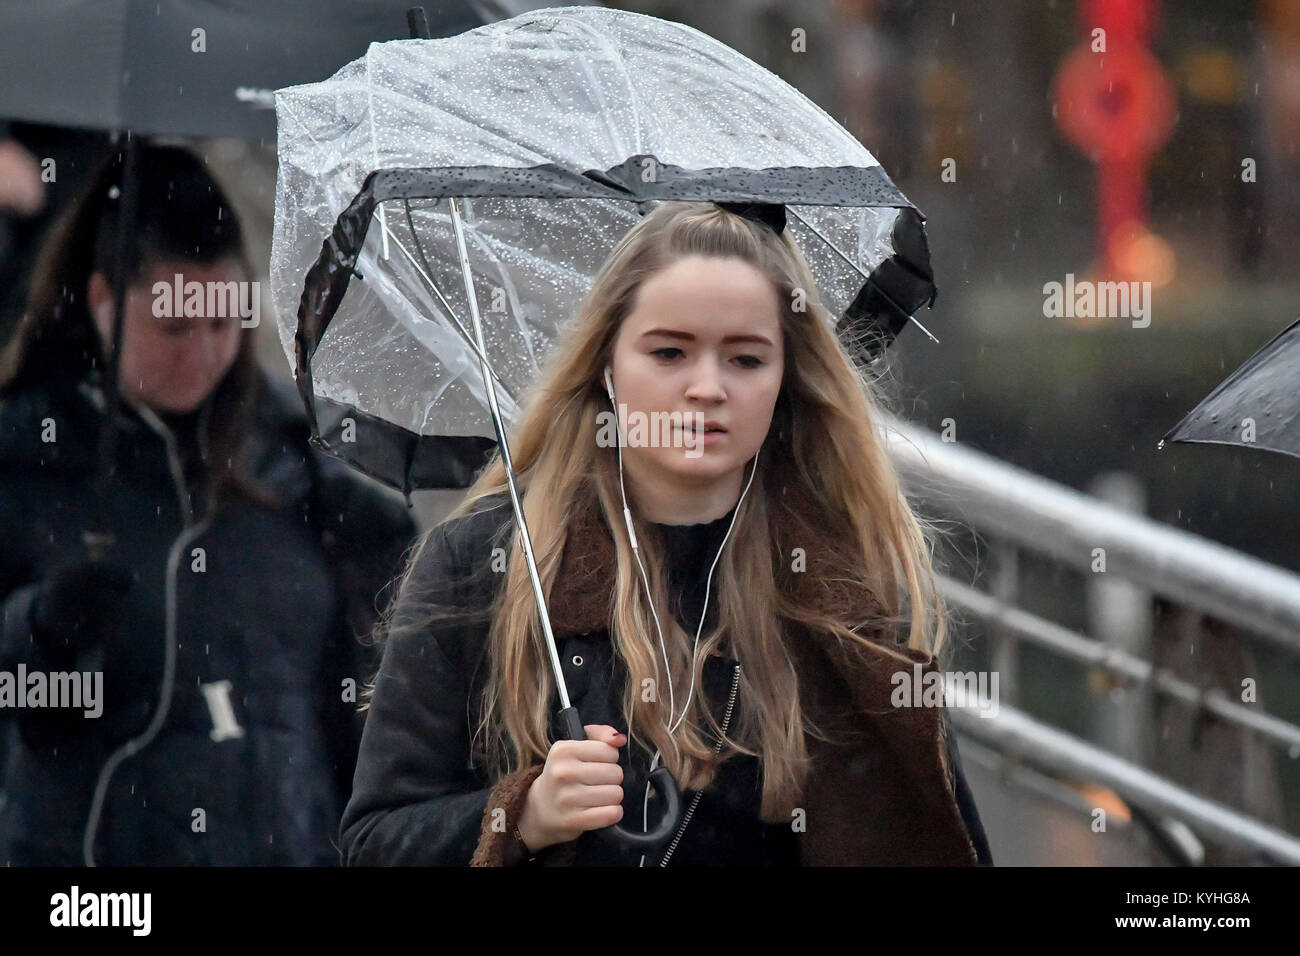 A woman shelters under an umbrella in pouring rain as people commute to work over Millennium Bridge, Bristol, on - Stock Image